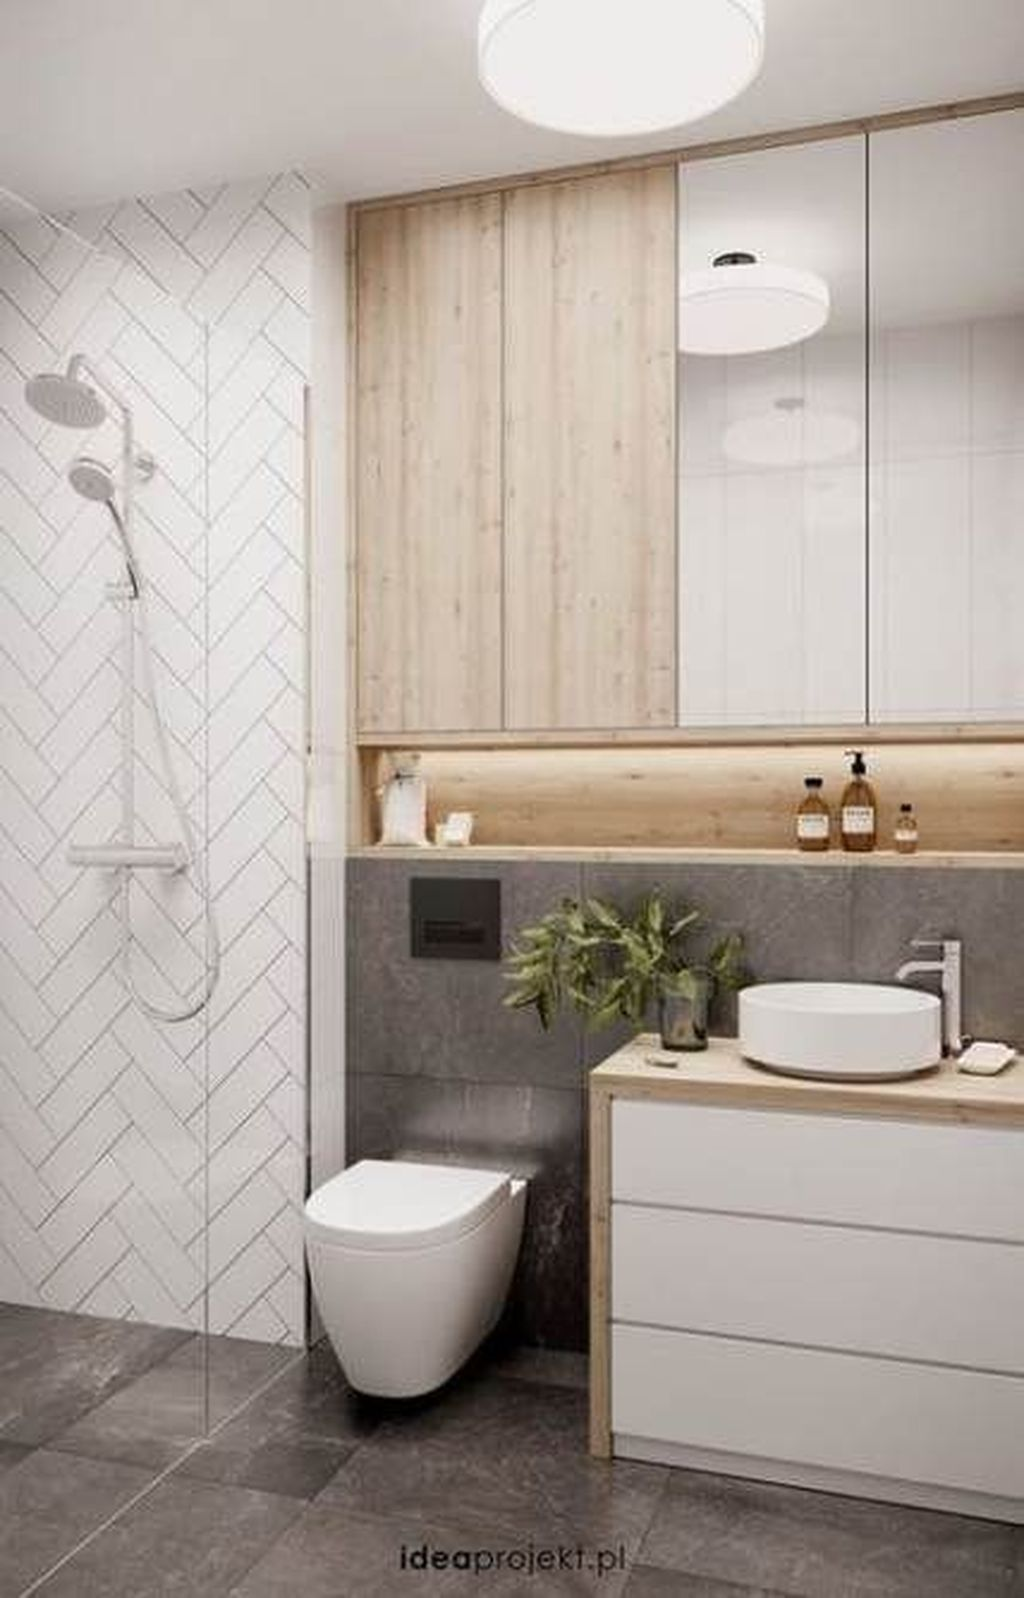 Inspiring Bathroom Tile Showers Design Ideas 23